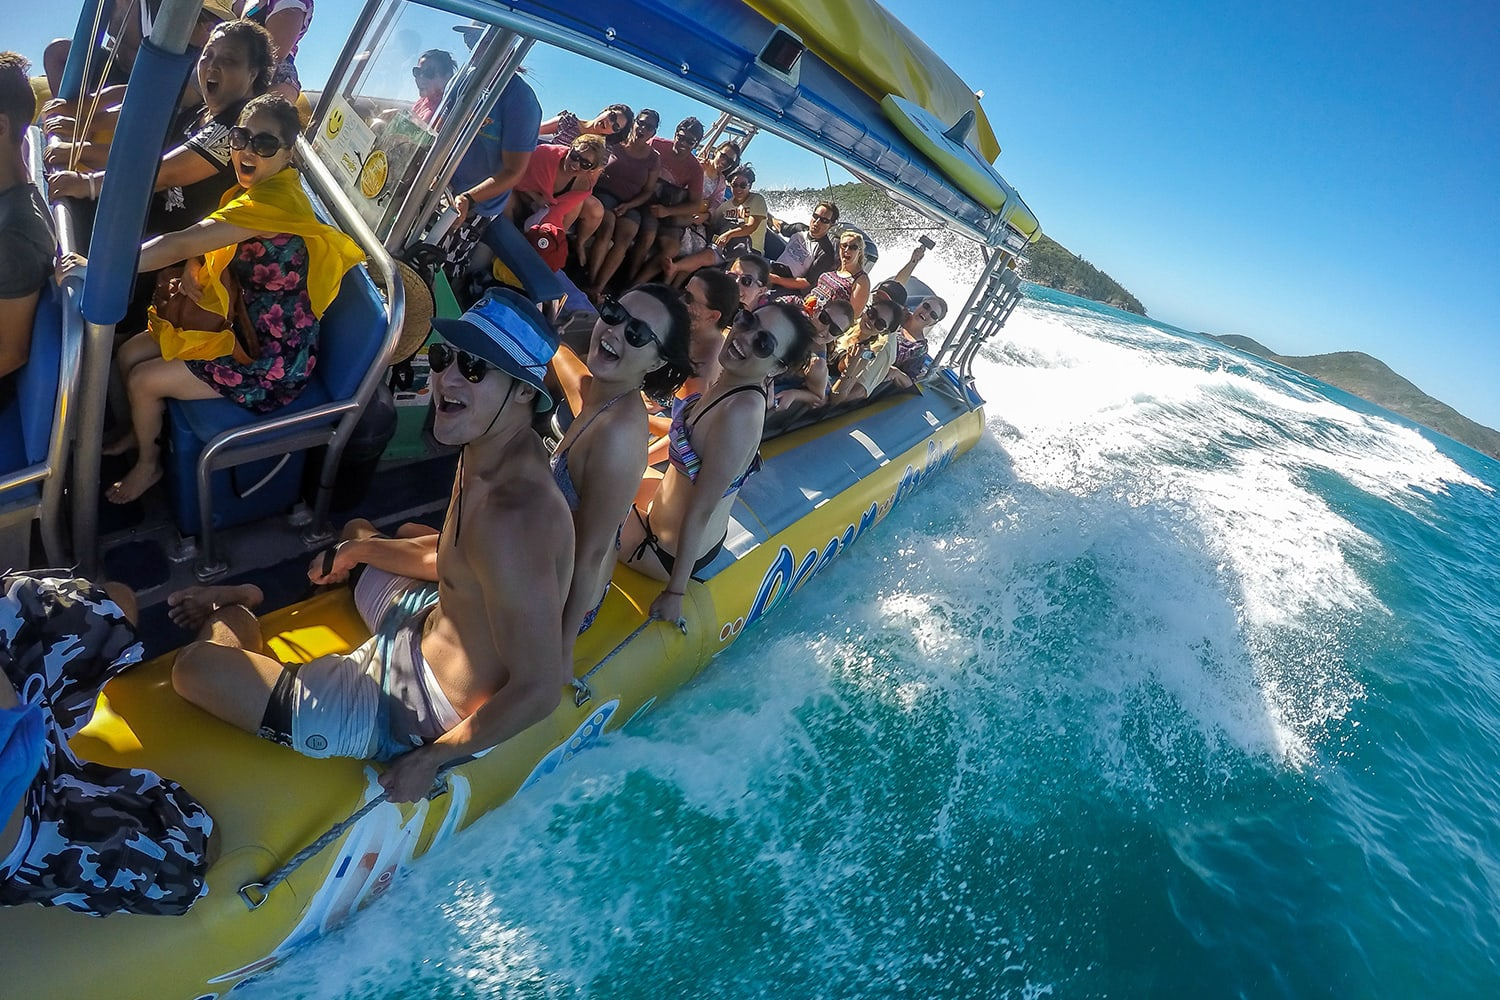 Whitsundays Snorkelling, Jet Rafting & Beach Day Tour - Airlie Beach